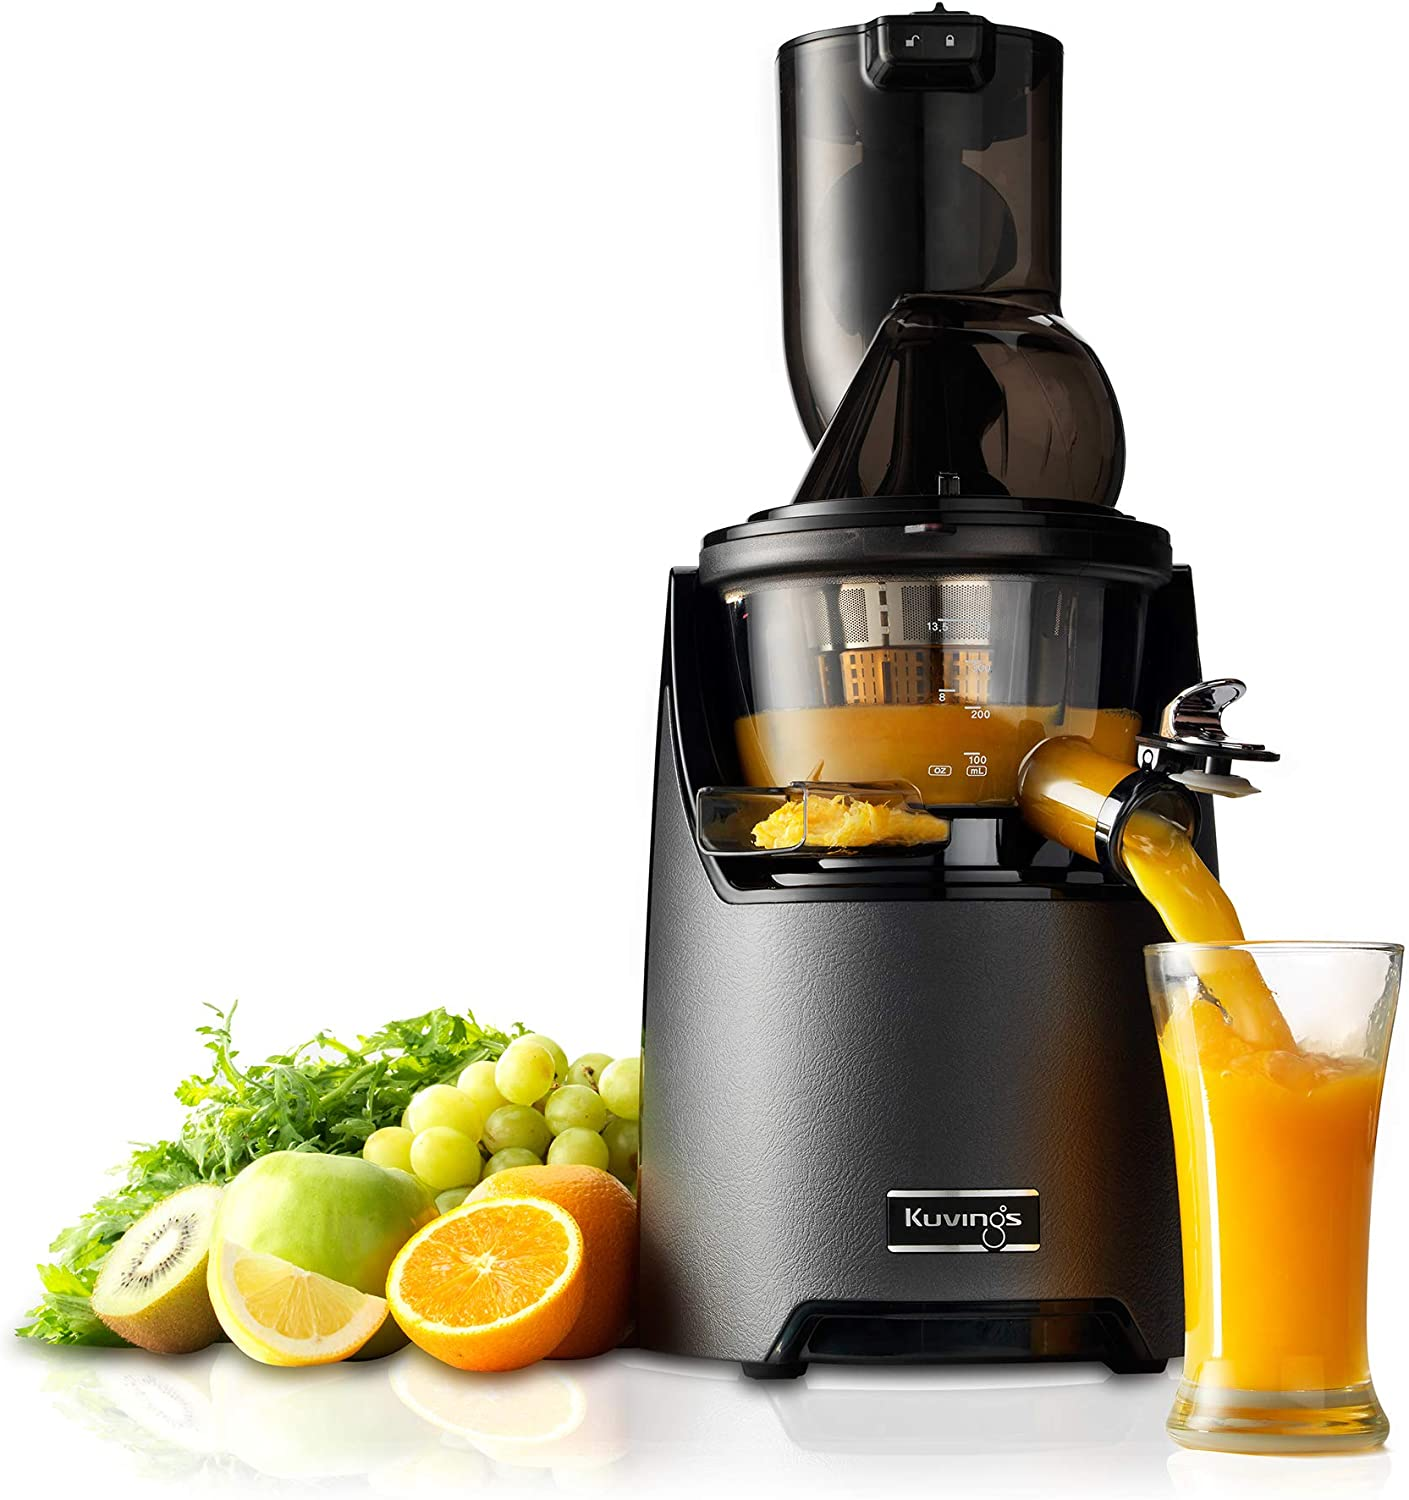 Review of Kuvings Whole Slow Juicer EVO820GM - Higher Nutrients and Vitamins